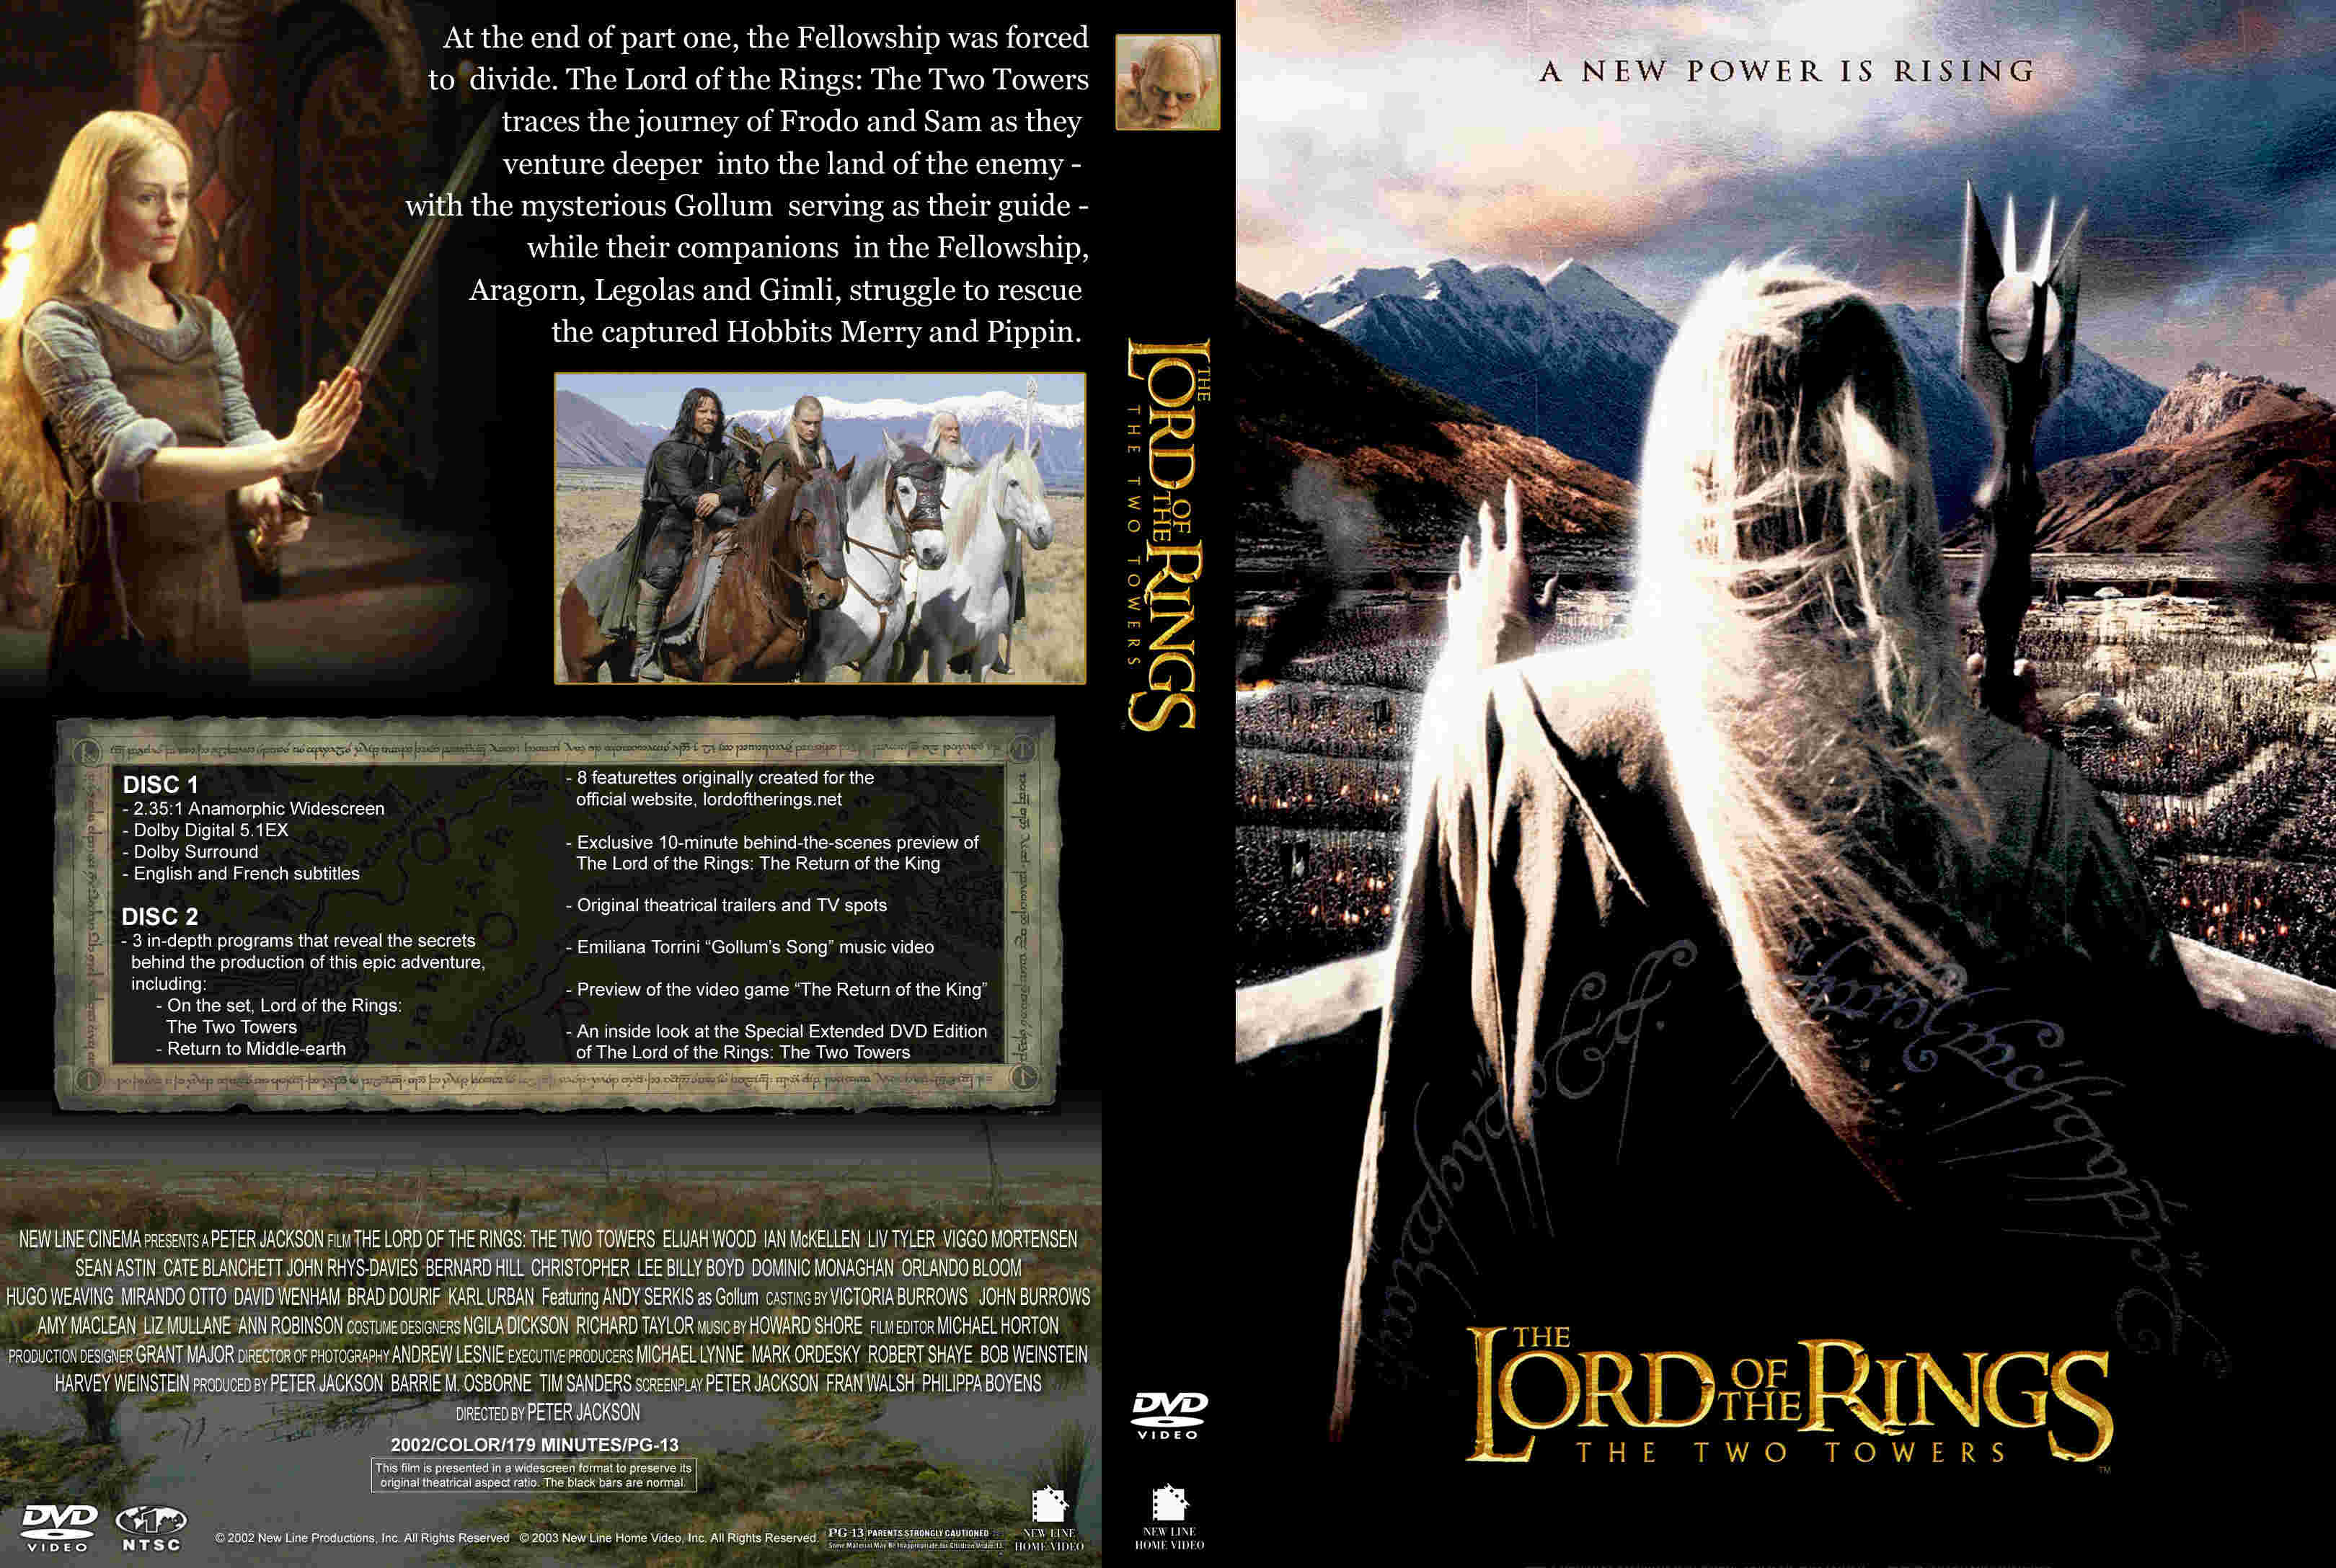 an analysis of the two towers in the lord of the rings I always wondered which are the two towers that are referred to which are the two towers in lord of the rings this isn't truly a site about literary analysis.